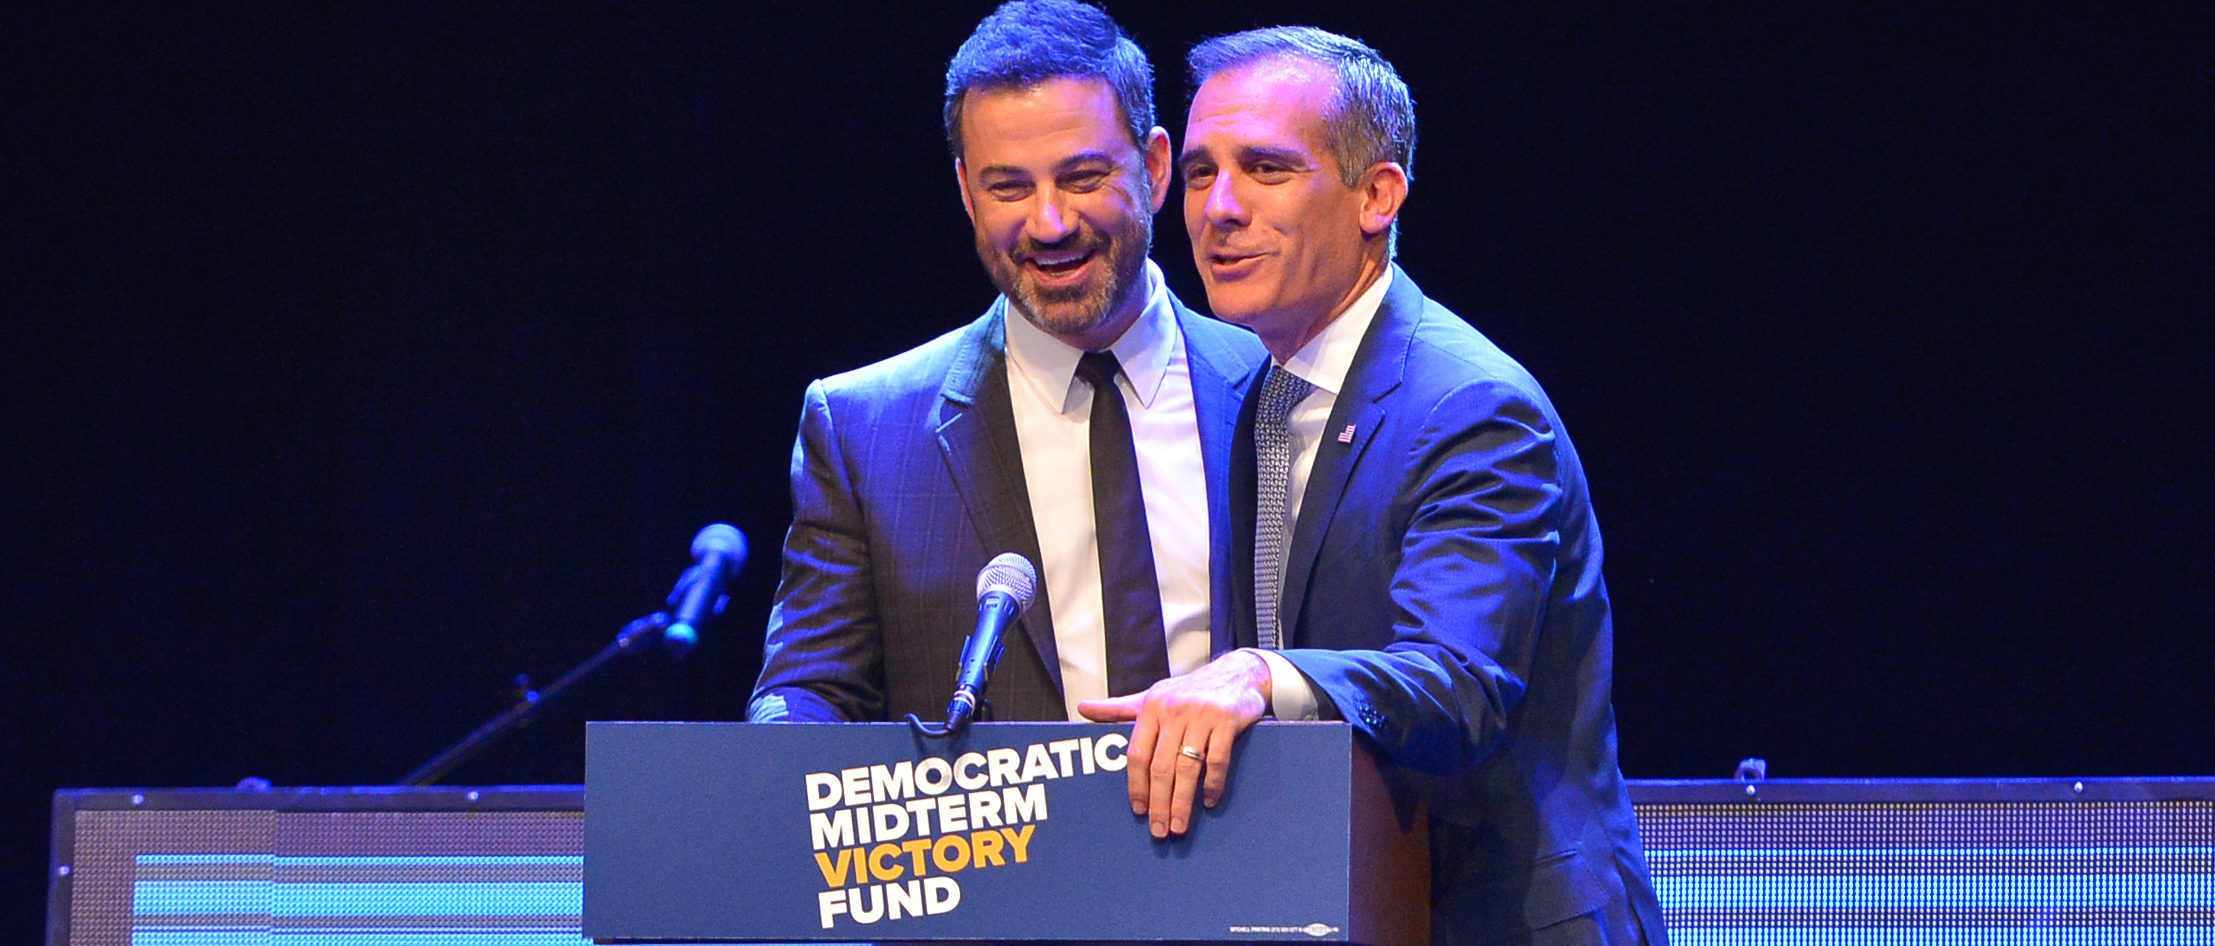 LOS ANGELES, CA - SEPTEMBER 25: Jimmy Kimmel and Los Angeles Mayor Eric Garcetti speak onstage at 1 Night, $1 Million, 10 States, 100s Of Victories With Eric Garcetti, Jimmy Kimmel, And Dj Khaled on September 25, 2018 in Los Angeles, California. (Photo by Charley Gallay/Getty Images for Democratic Midterm Victory Fund)